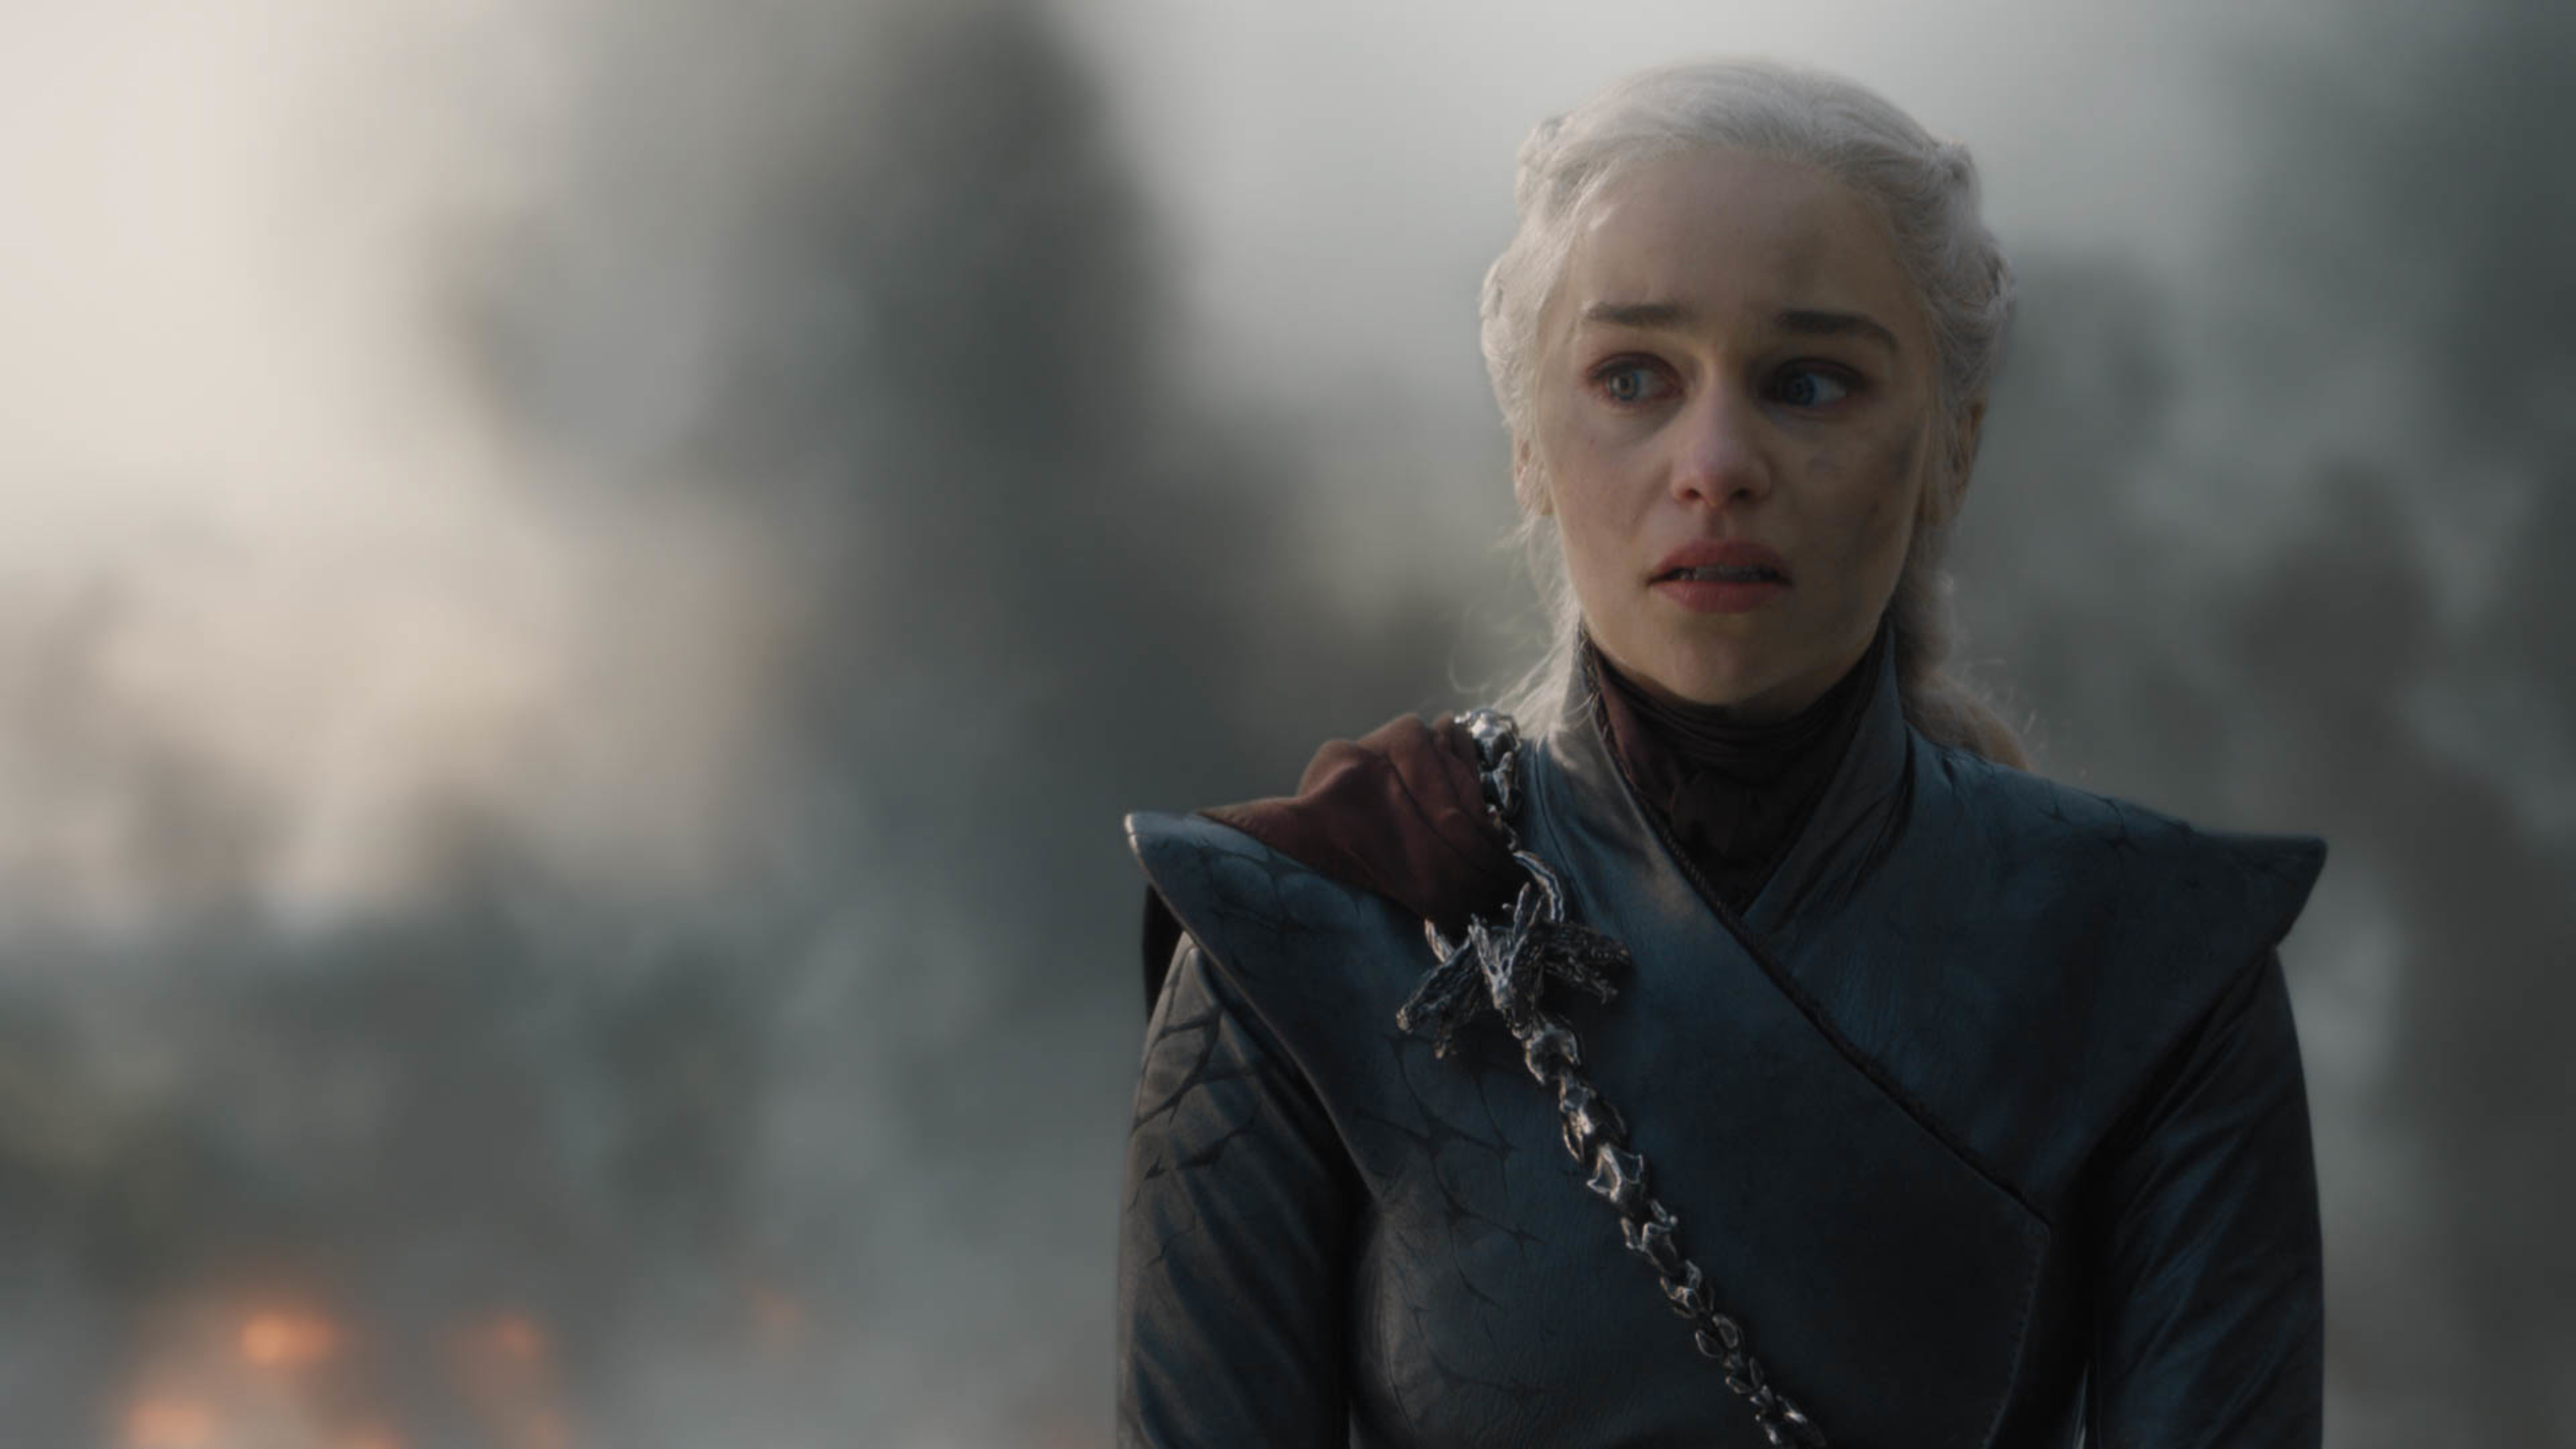 HBO Preparing 'Game of Thrones' Targaryen Prequel Series From George R.R. Martin — Report